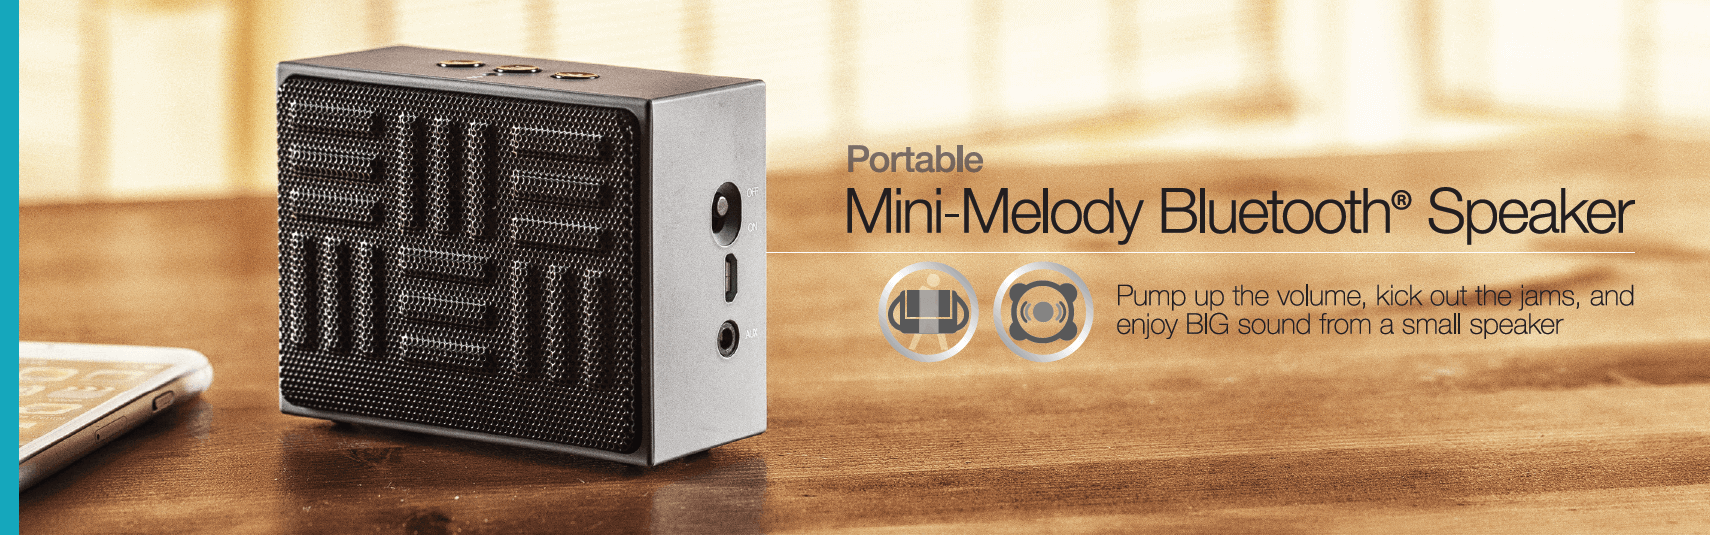 Mini-Melody Bluetooth Speaker